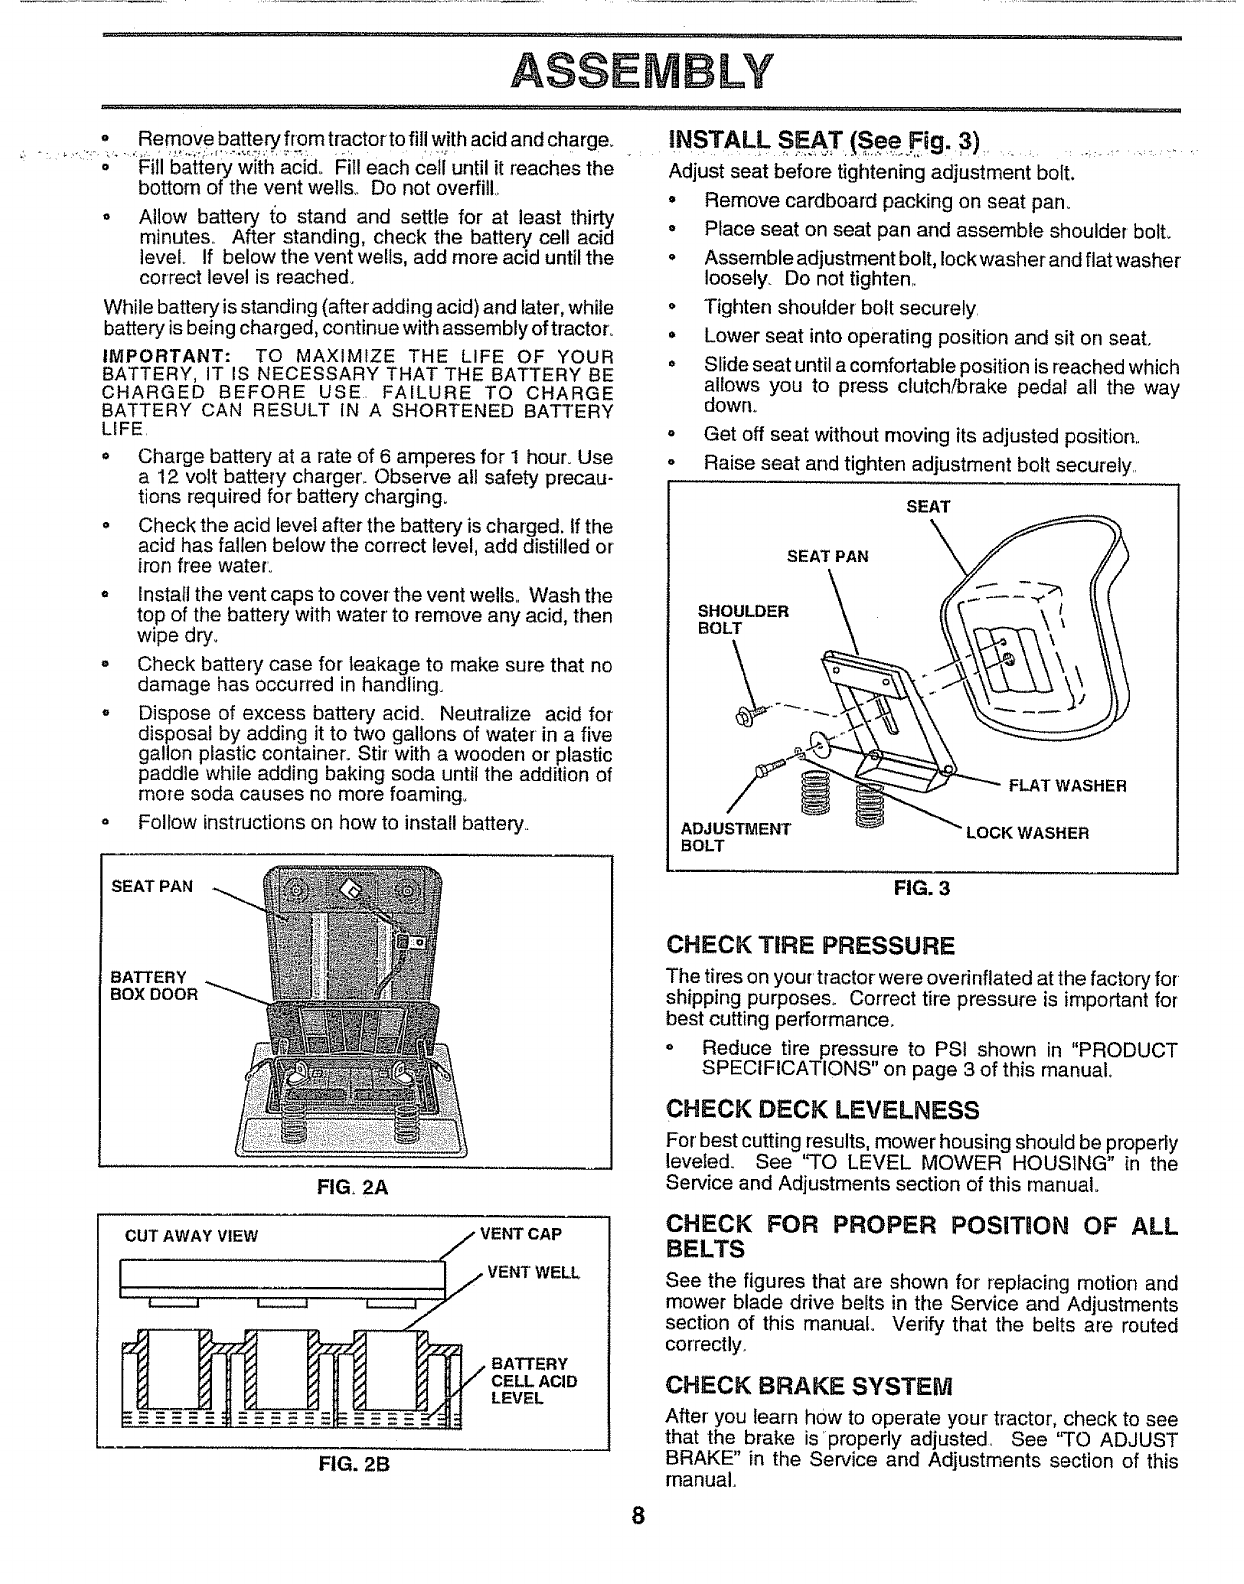 Sears 917 257552 Users Manual The Zinc Carbon Dry Cell Or Battery Shown In A Cutaway Diagram Is Assem Ly